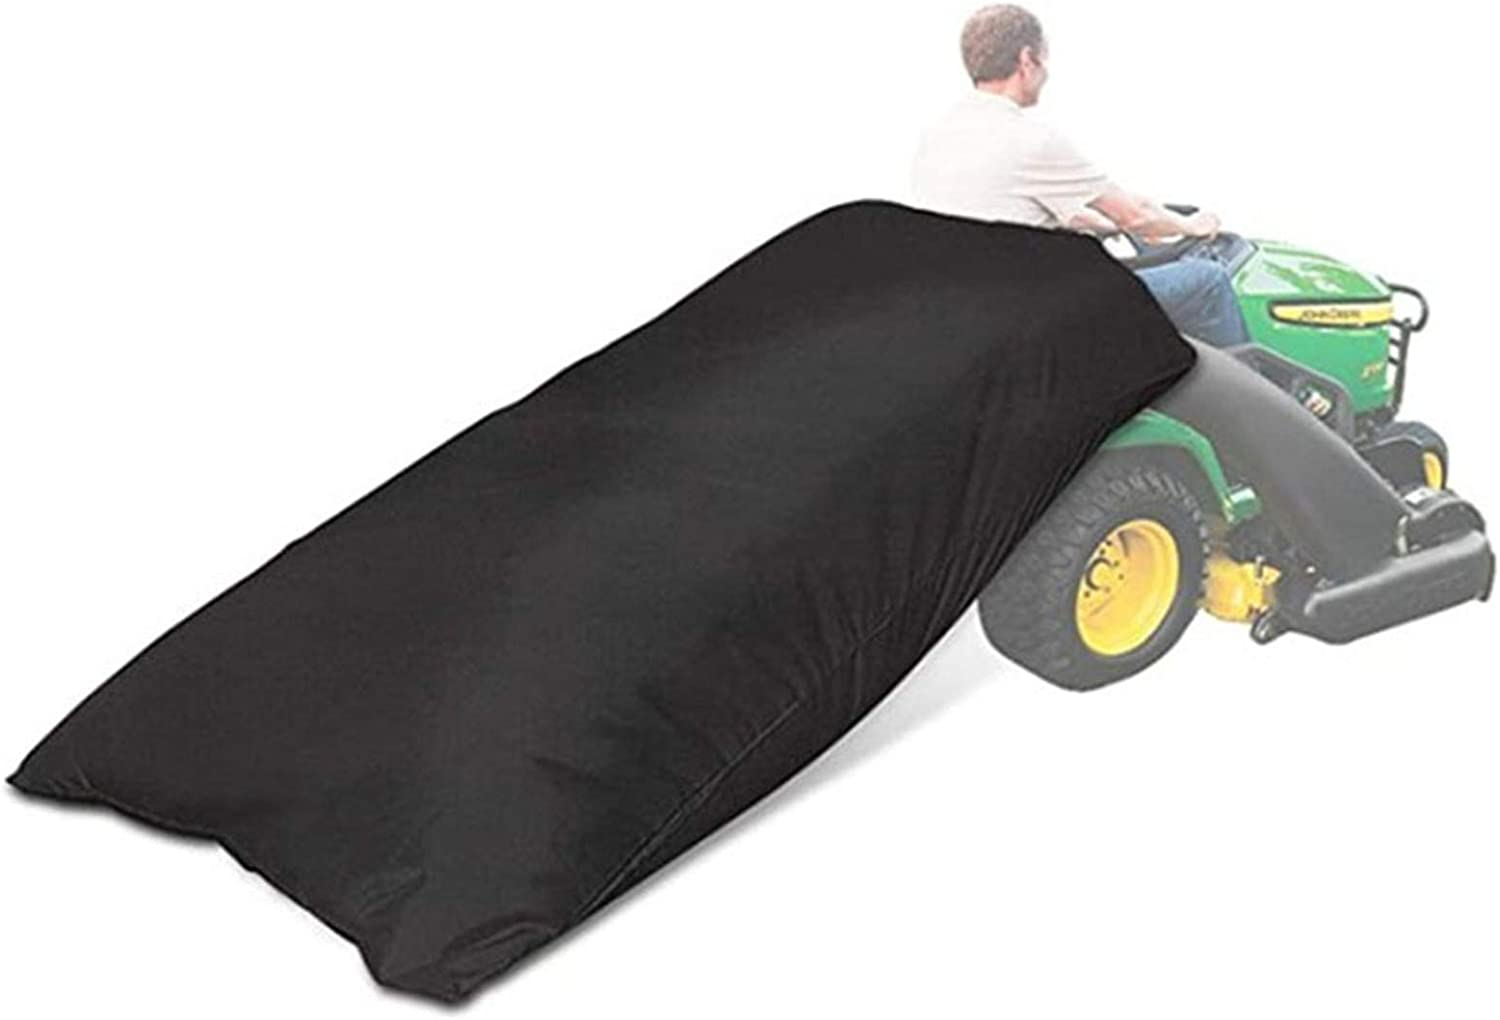 XINNI 2021 Animer and price revision Upgraded Version 210D Lawn Bag Grass Leaf Tractor San Jose Mall Ca